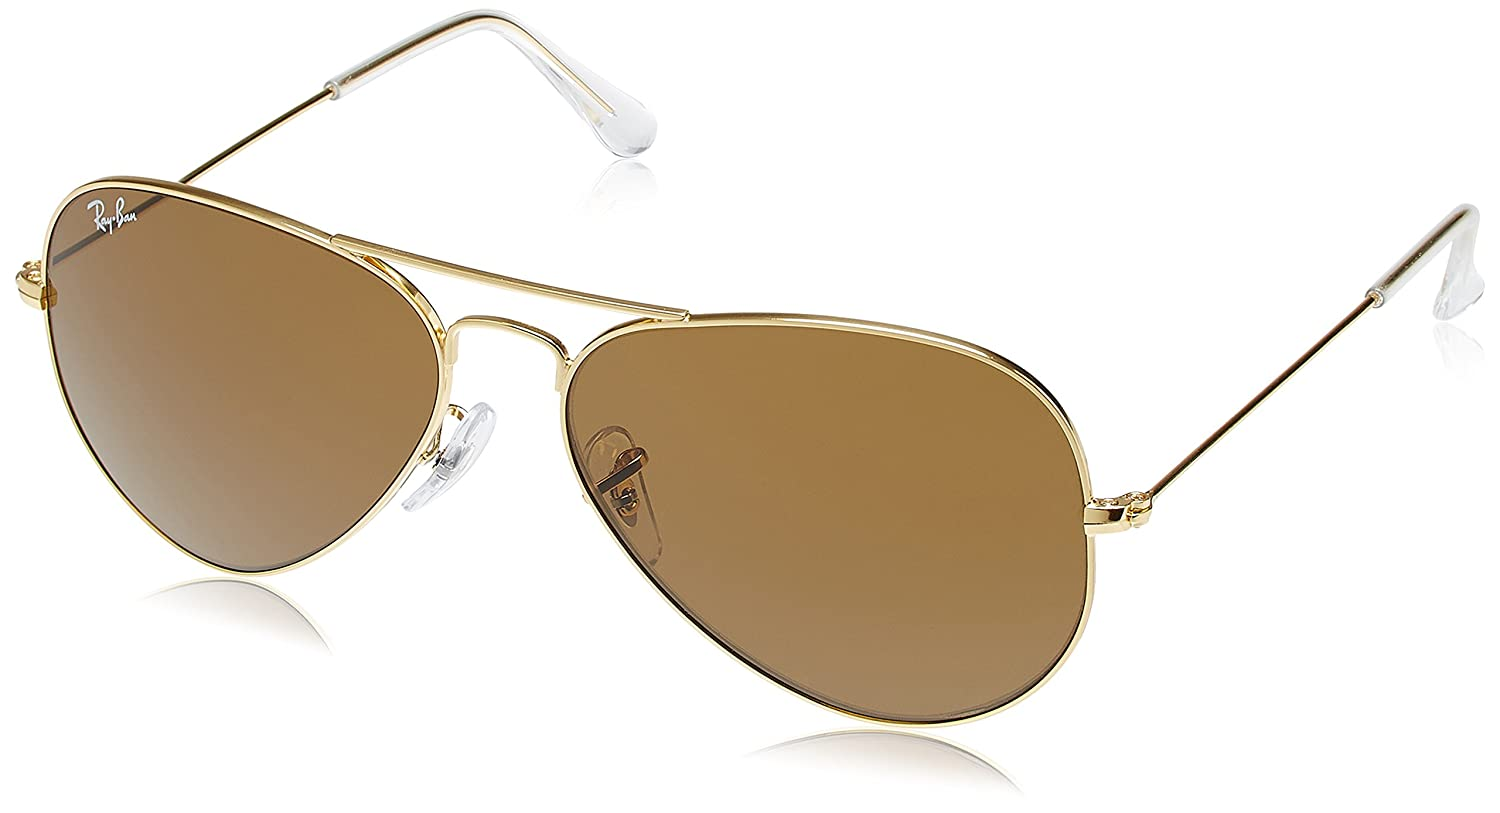 c7f0f5e62d Ray-Ban Aviator Unisex Sunglasses (RB3025